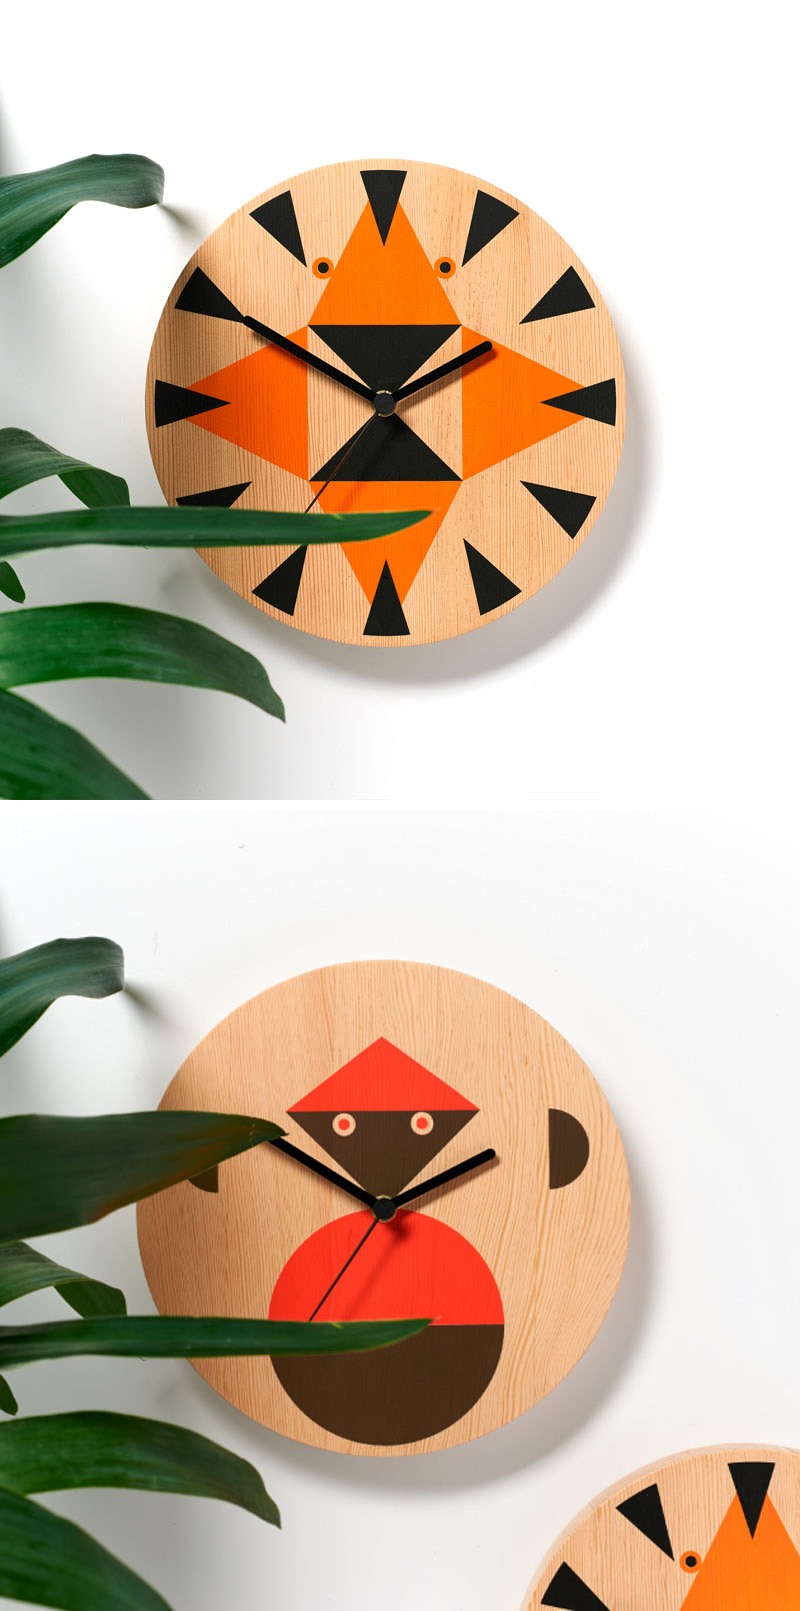 Animal faces made from simple geometric shapes create a whimsical look on these modern wood wall clocks.